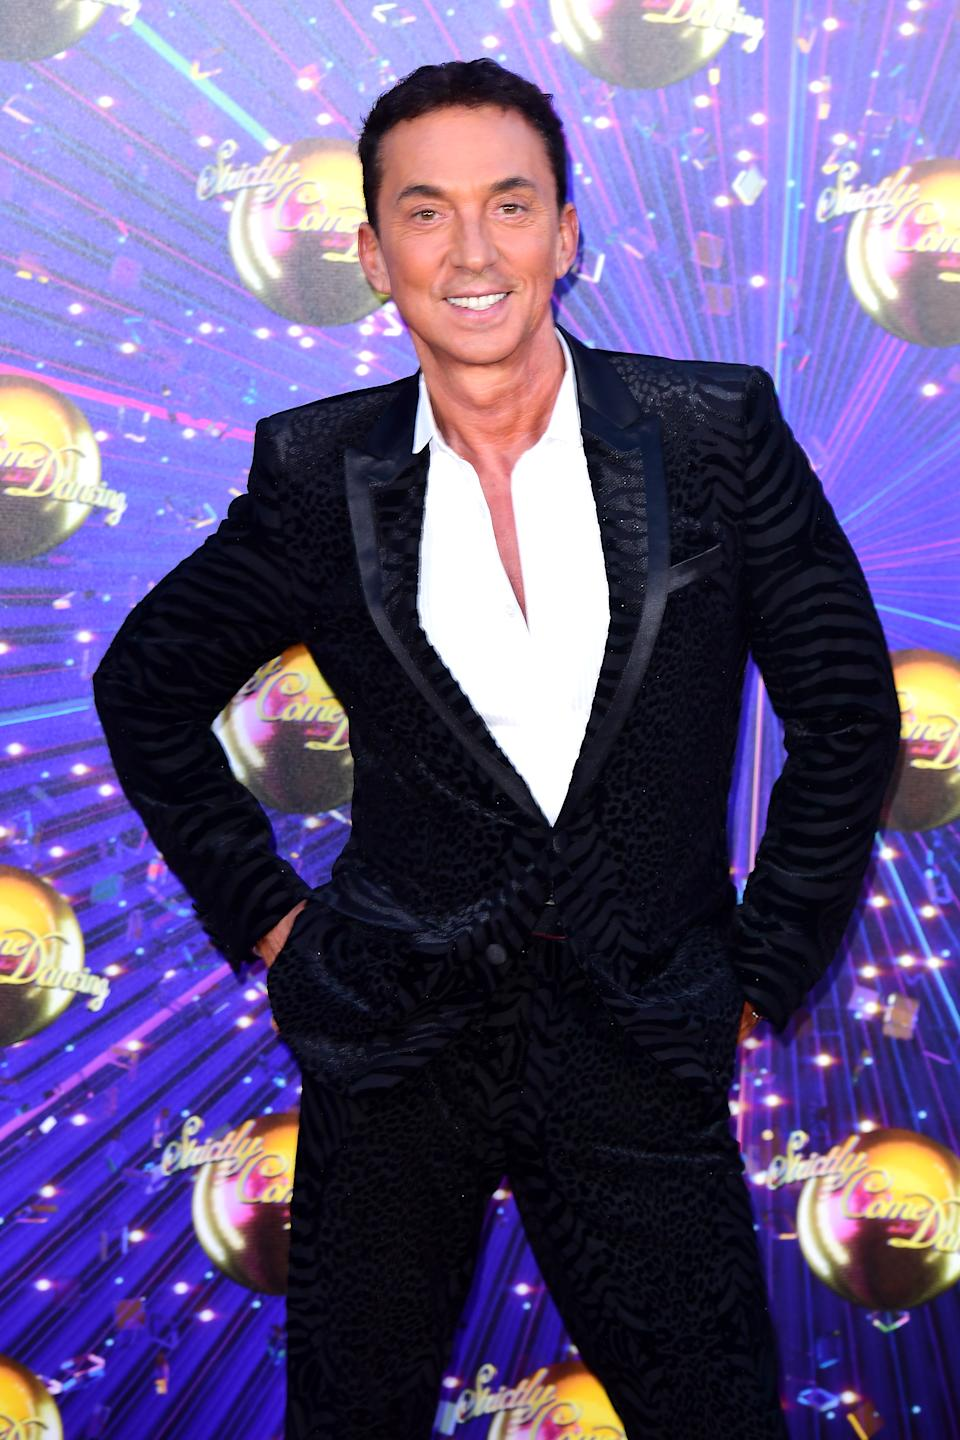 Embargoed to 1500 Friday August 21 File photo dated 26/8/2019 of Bruno Tonioli who will be missing from the Strictly Come Dancing judging panel for Saturday night shows when the series returns later this year, it has been confirmed.